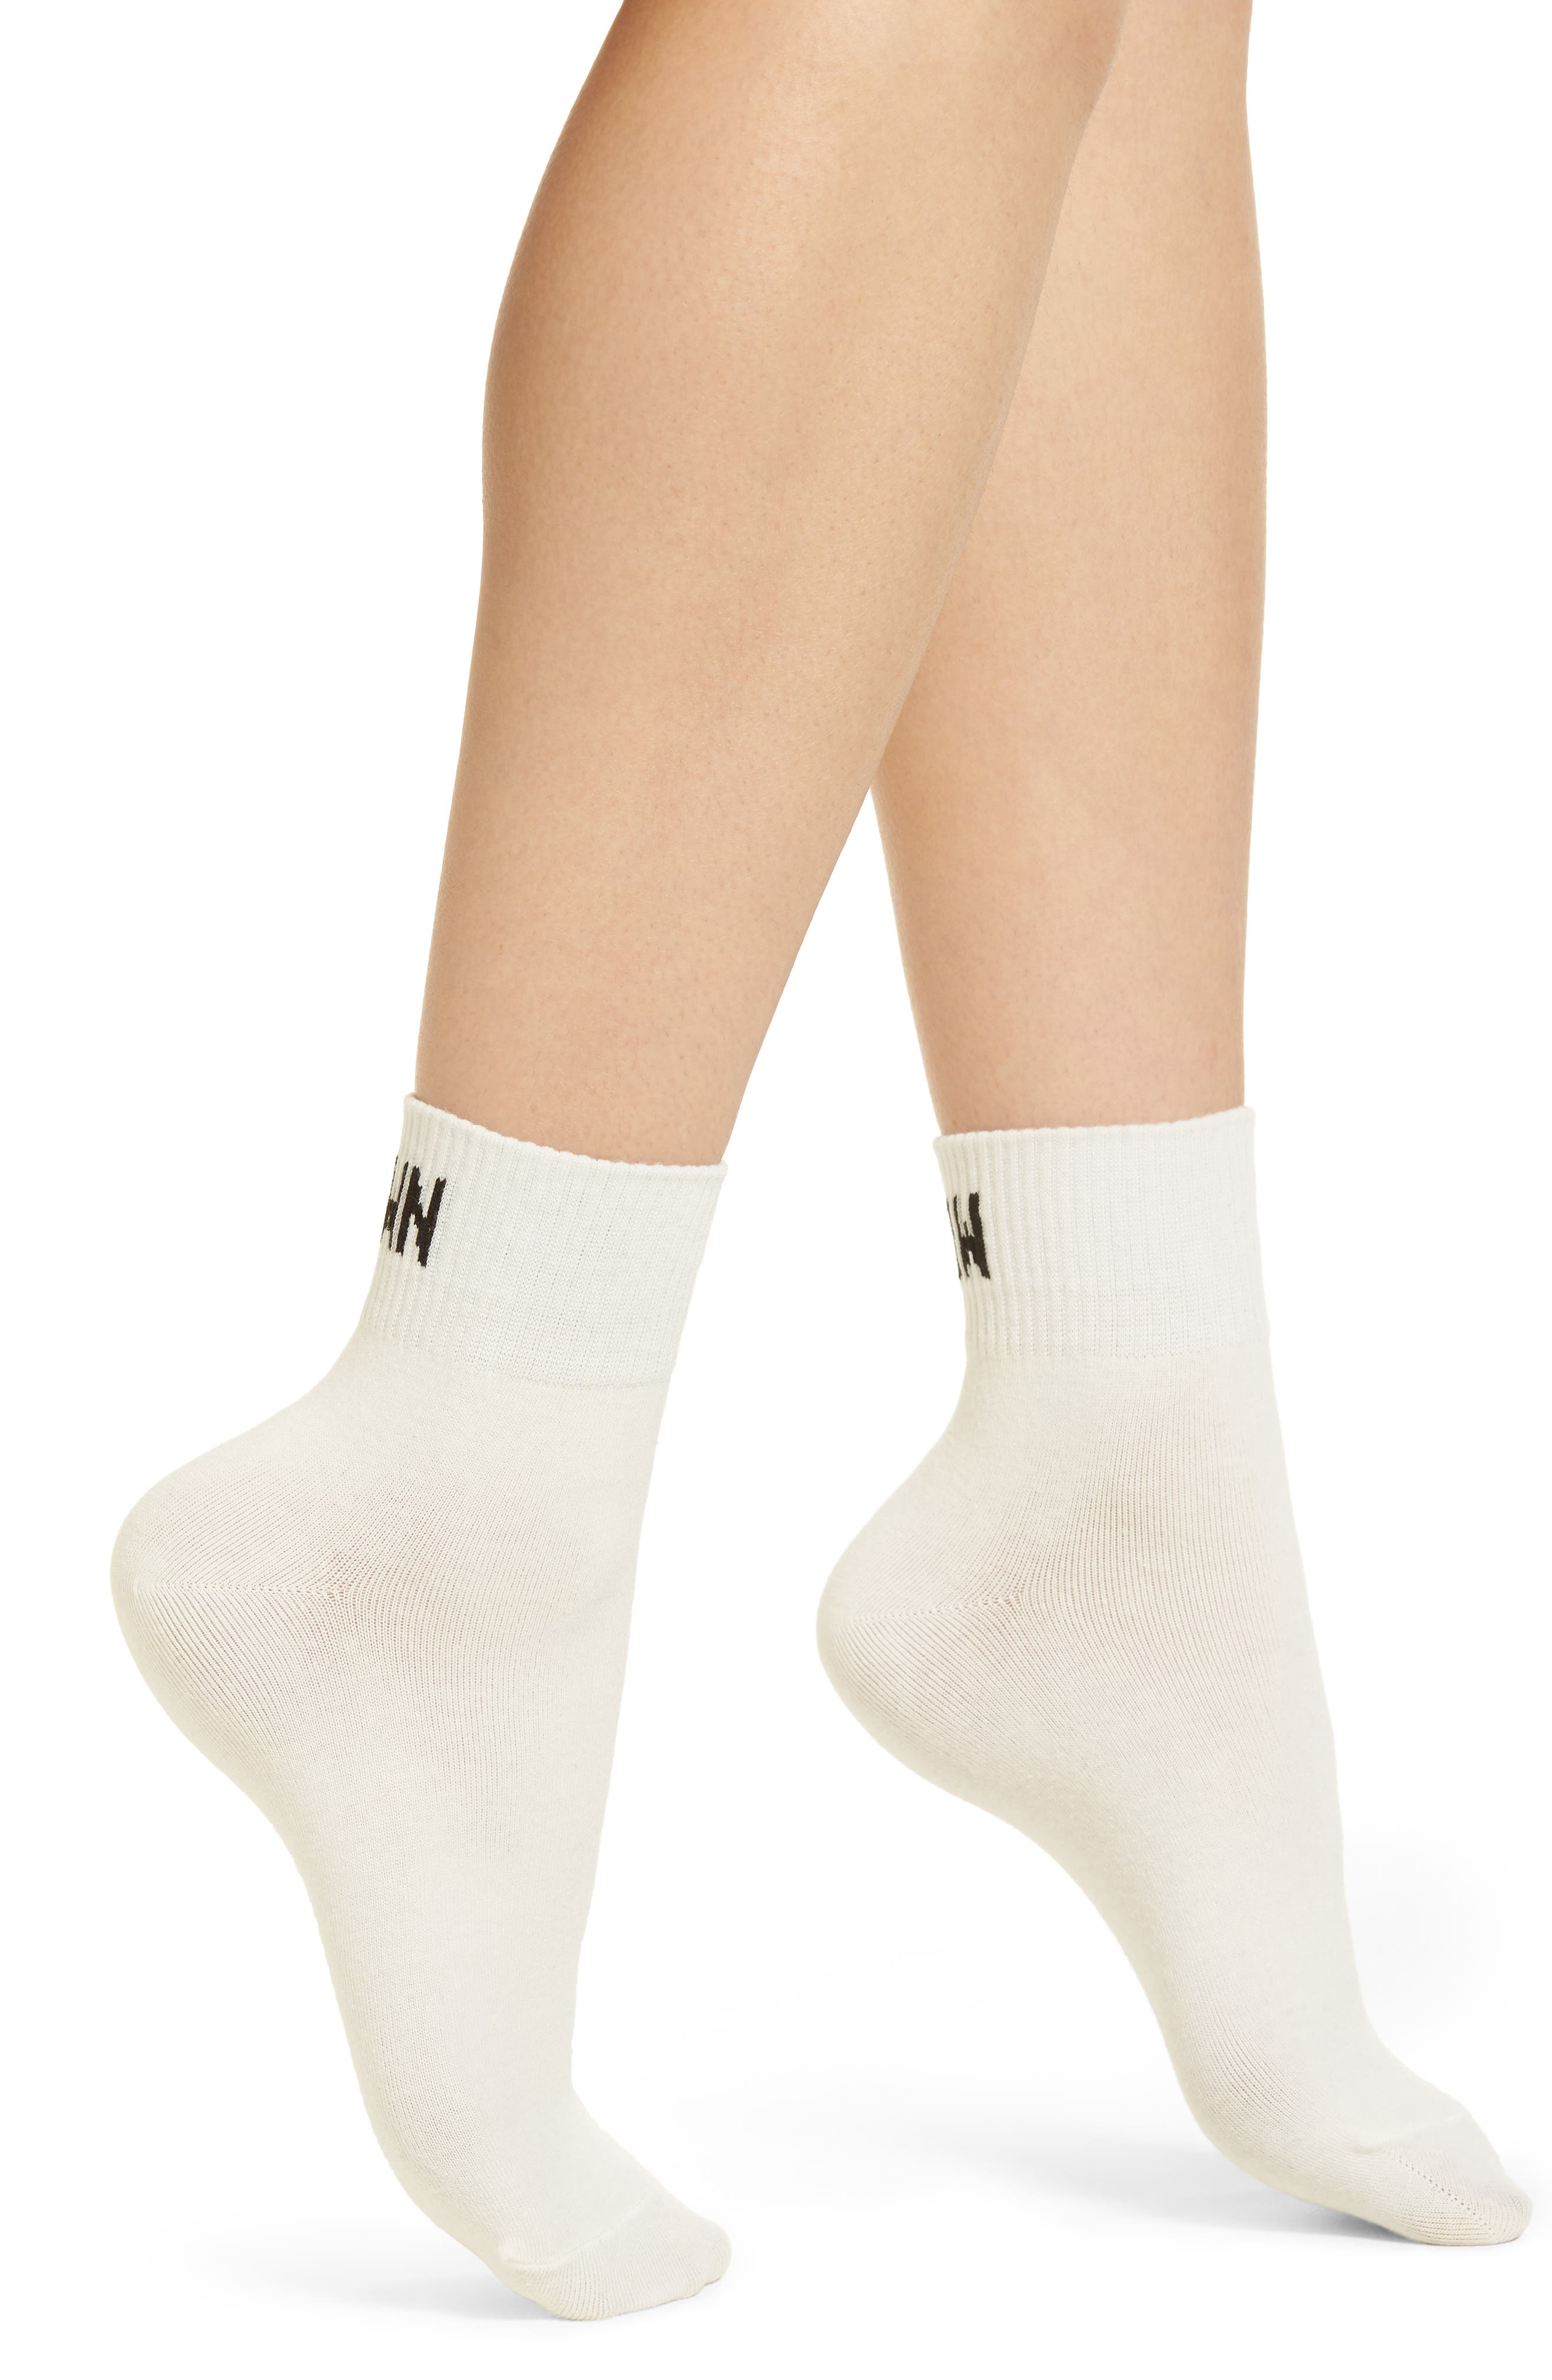 Slow Down Ankle Socks,                         Main,                         color, 100